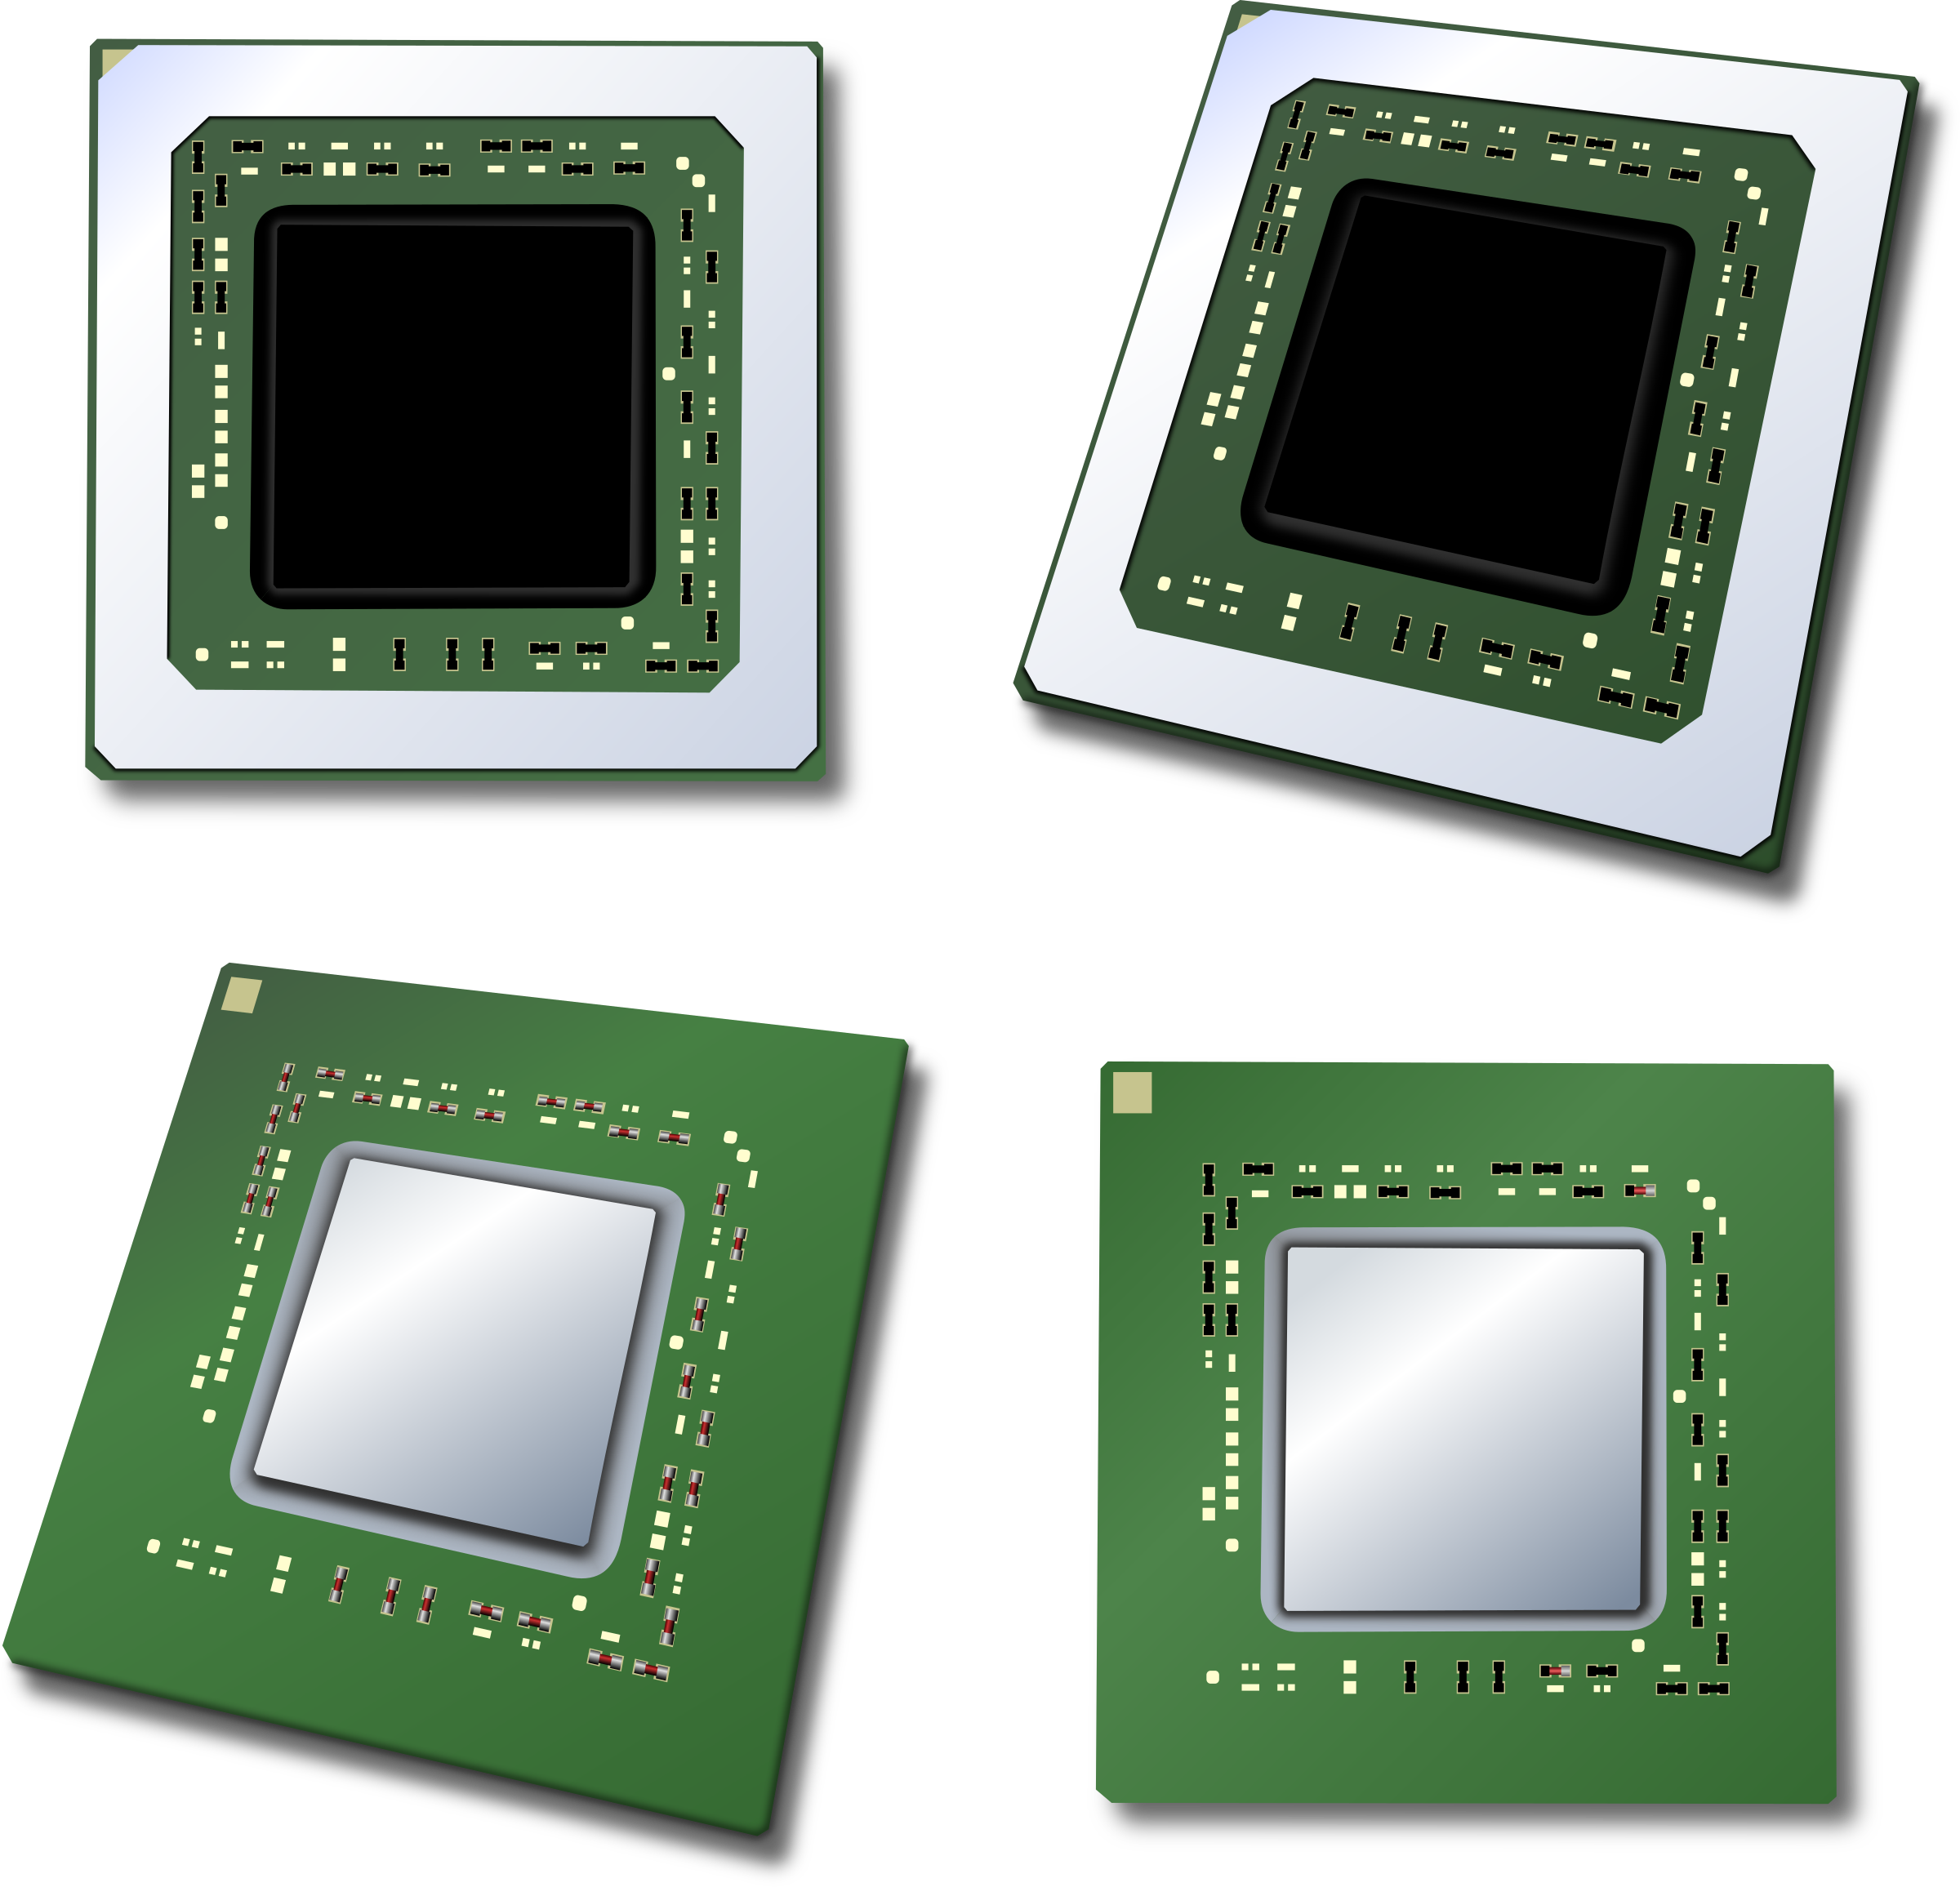 Cpu central processing unit. Electronics clipart computer chip